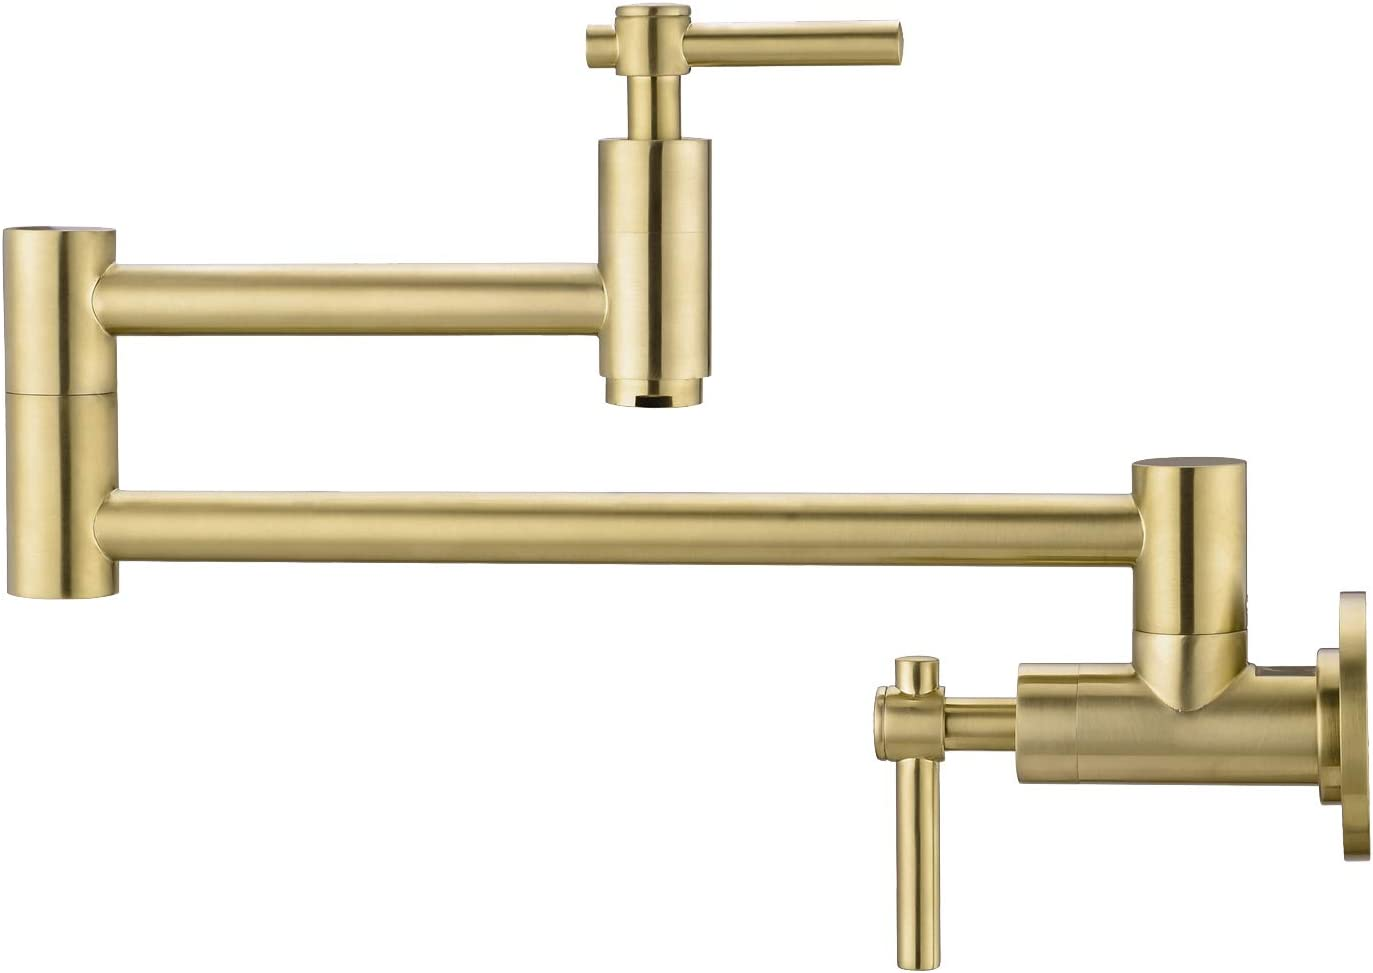 BZOOSIU Gold Pot Filler Faucet Wall Mount, Solid Brass with Stretchable Double Joint Swing Arm Pot Filler Faucet, Single Hole Two Handles Wall Mount Kitchen Faucet